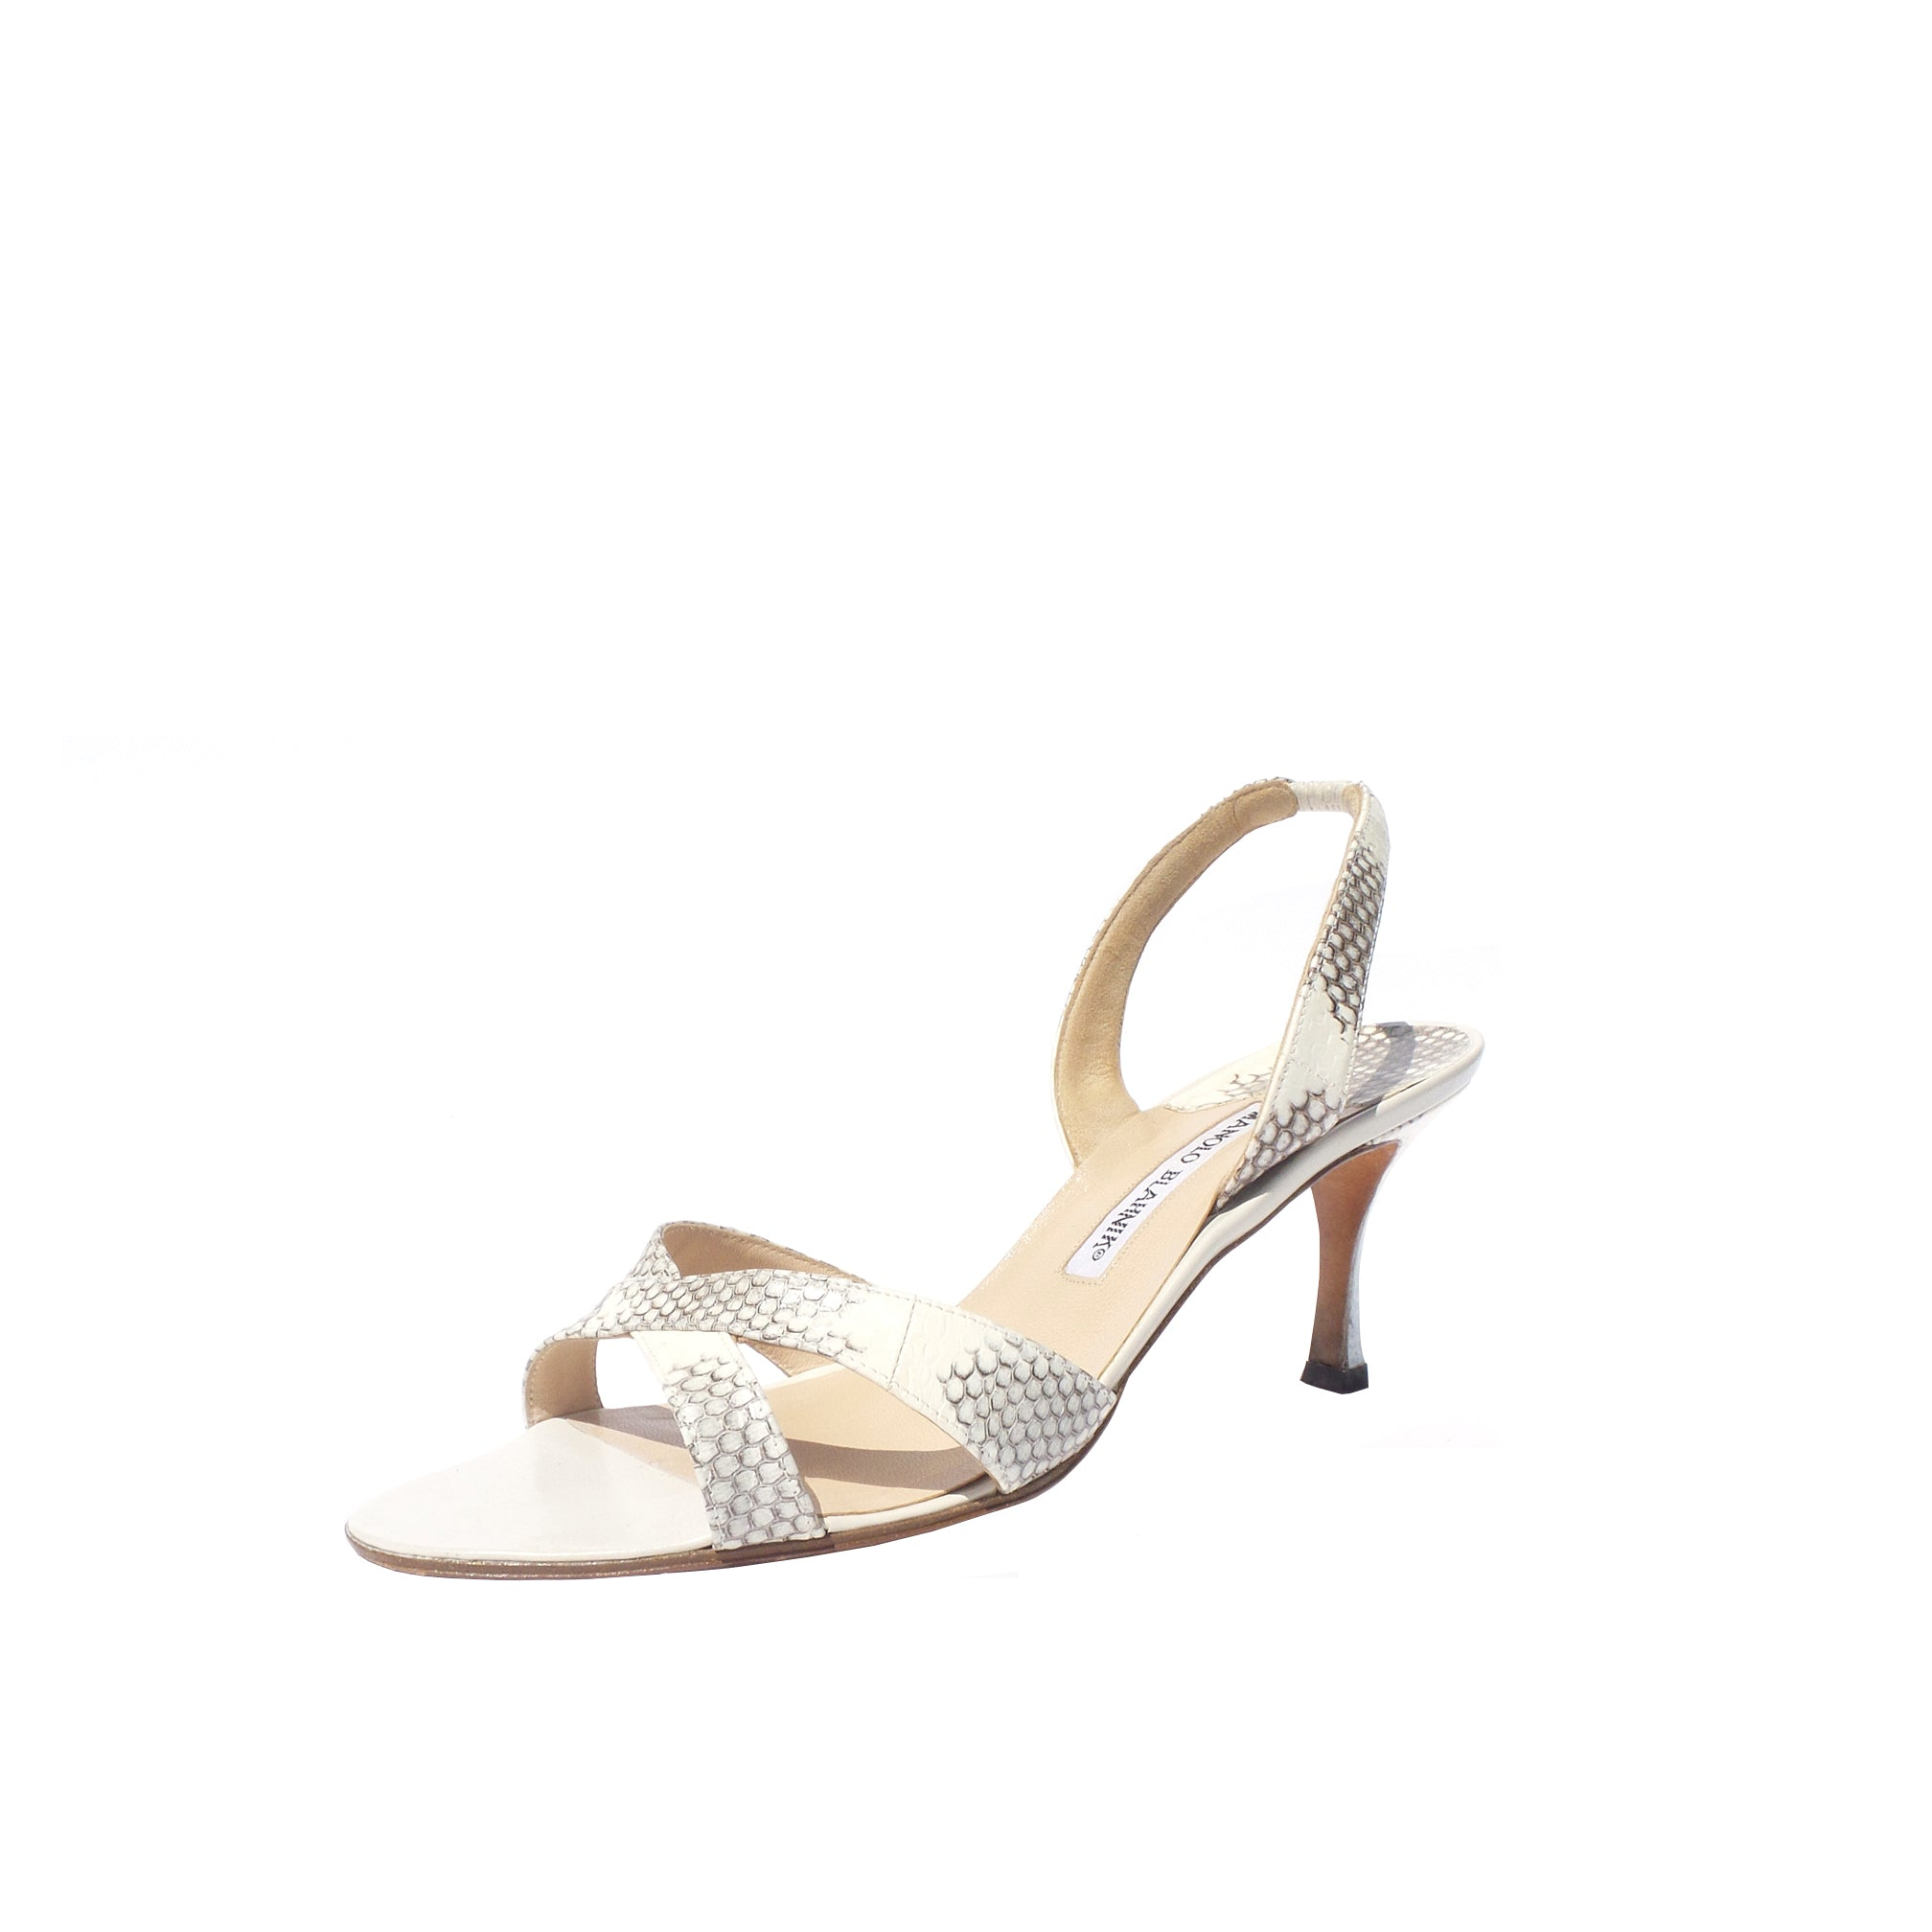 MANOLO BLAHNIK Callasli Ivory Gray Serpent Open Toe Slingback Sandals Pumps 39